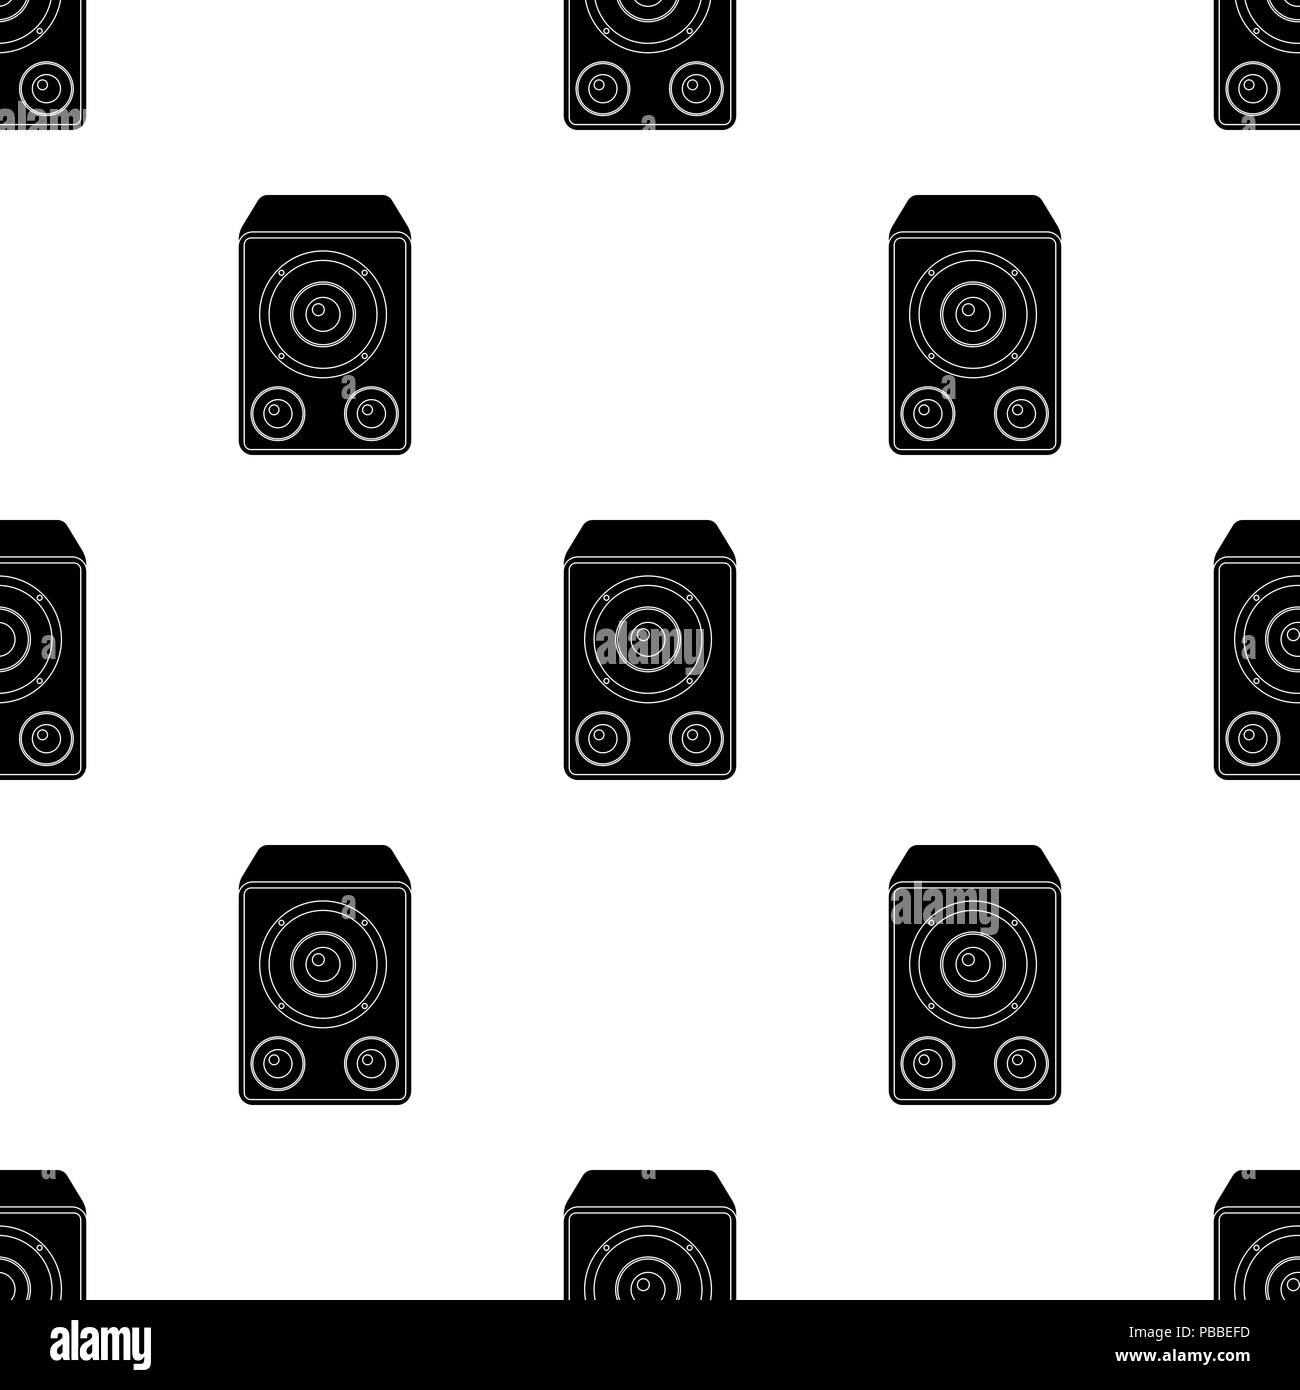 Subwoofer For Loud Musicrty And Parties Single Icon In Black